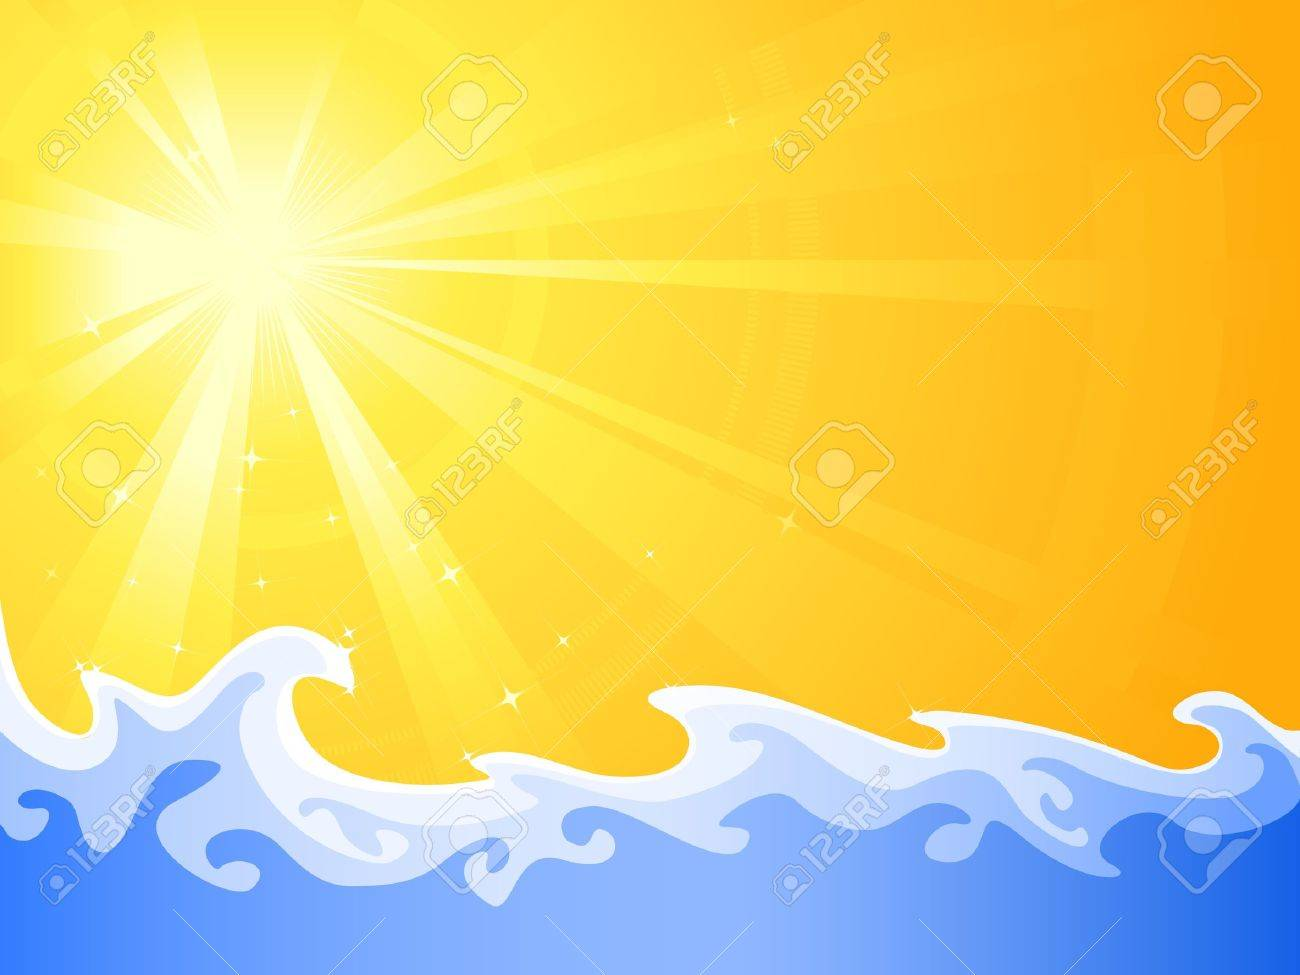 Asymmetric sunny light burst with cool relaxing water waves. Use of radial and linear gradients, global colors. Artwork neatly grouped and layered. Stock Vector - 7059255